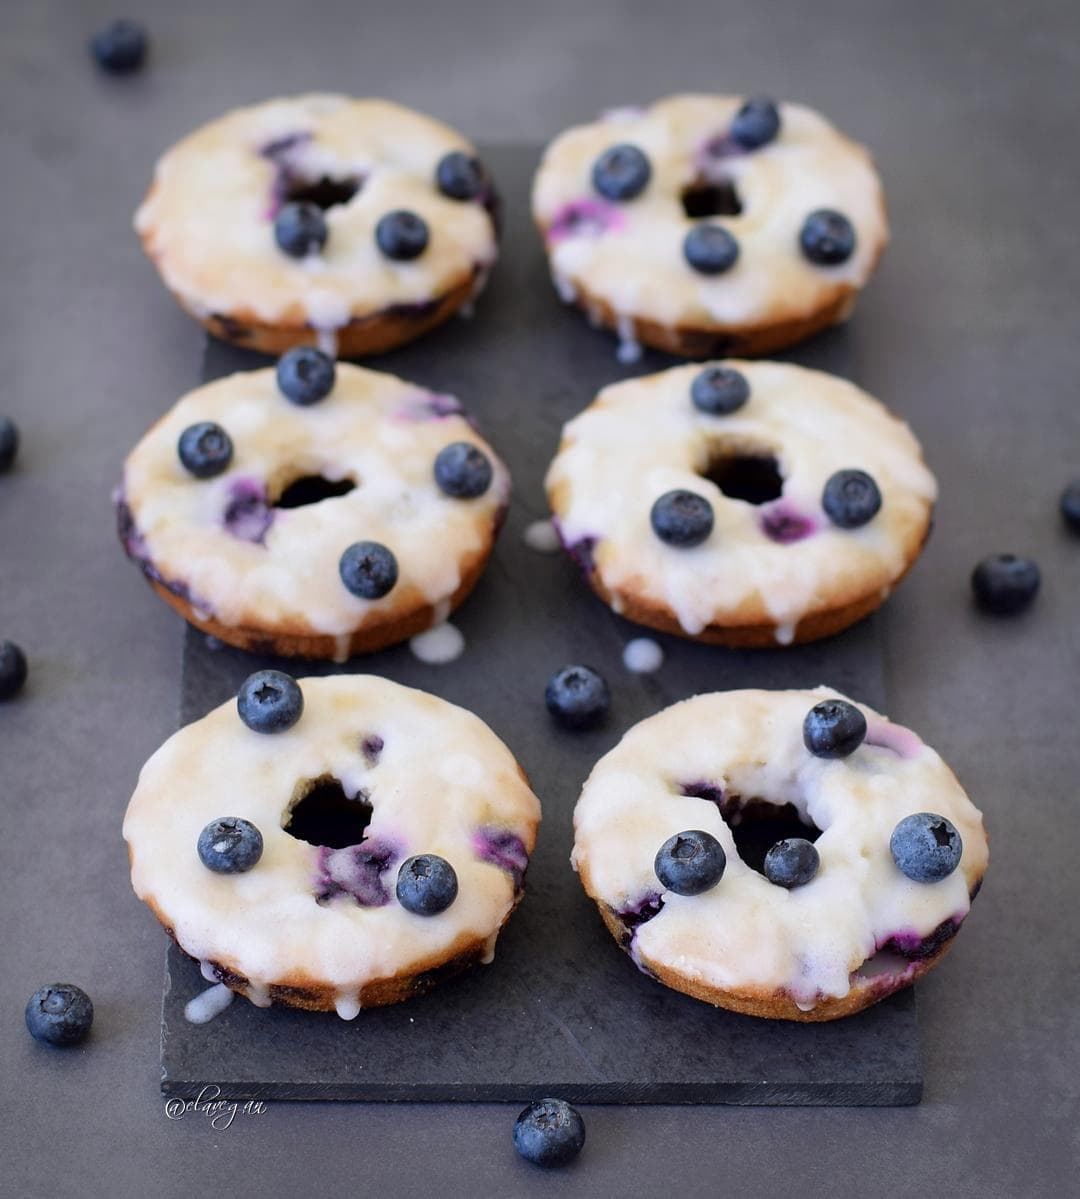 Baked blueberry donuts with a sugar free lemon glaze. These blueberry donuts are vegan, gluten free, refined sugar free, low in fat, healthy and delicious. Easy to make recipe!